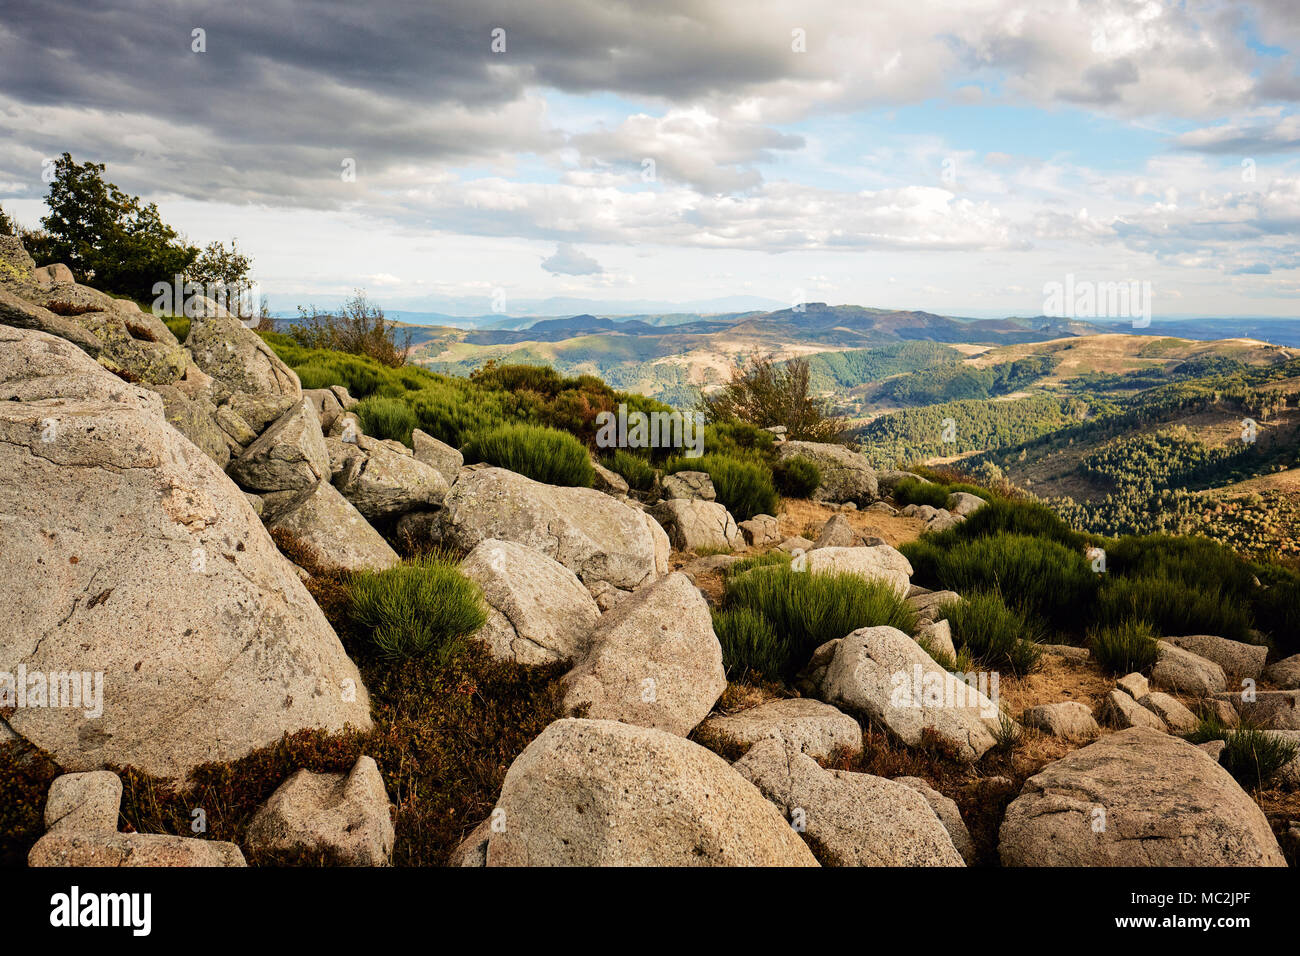 The rugged rocky rolling hill landscape of the Ardeche in south central France - Stock Image